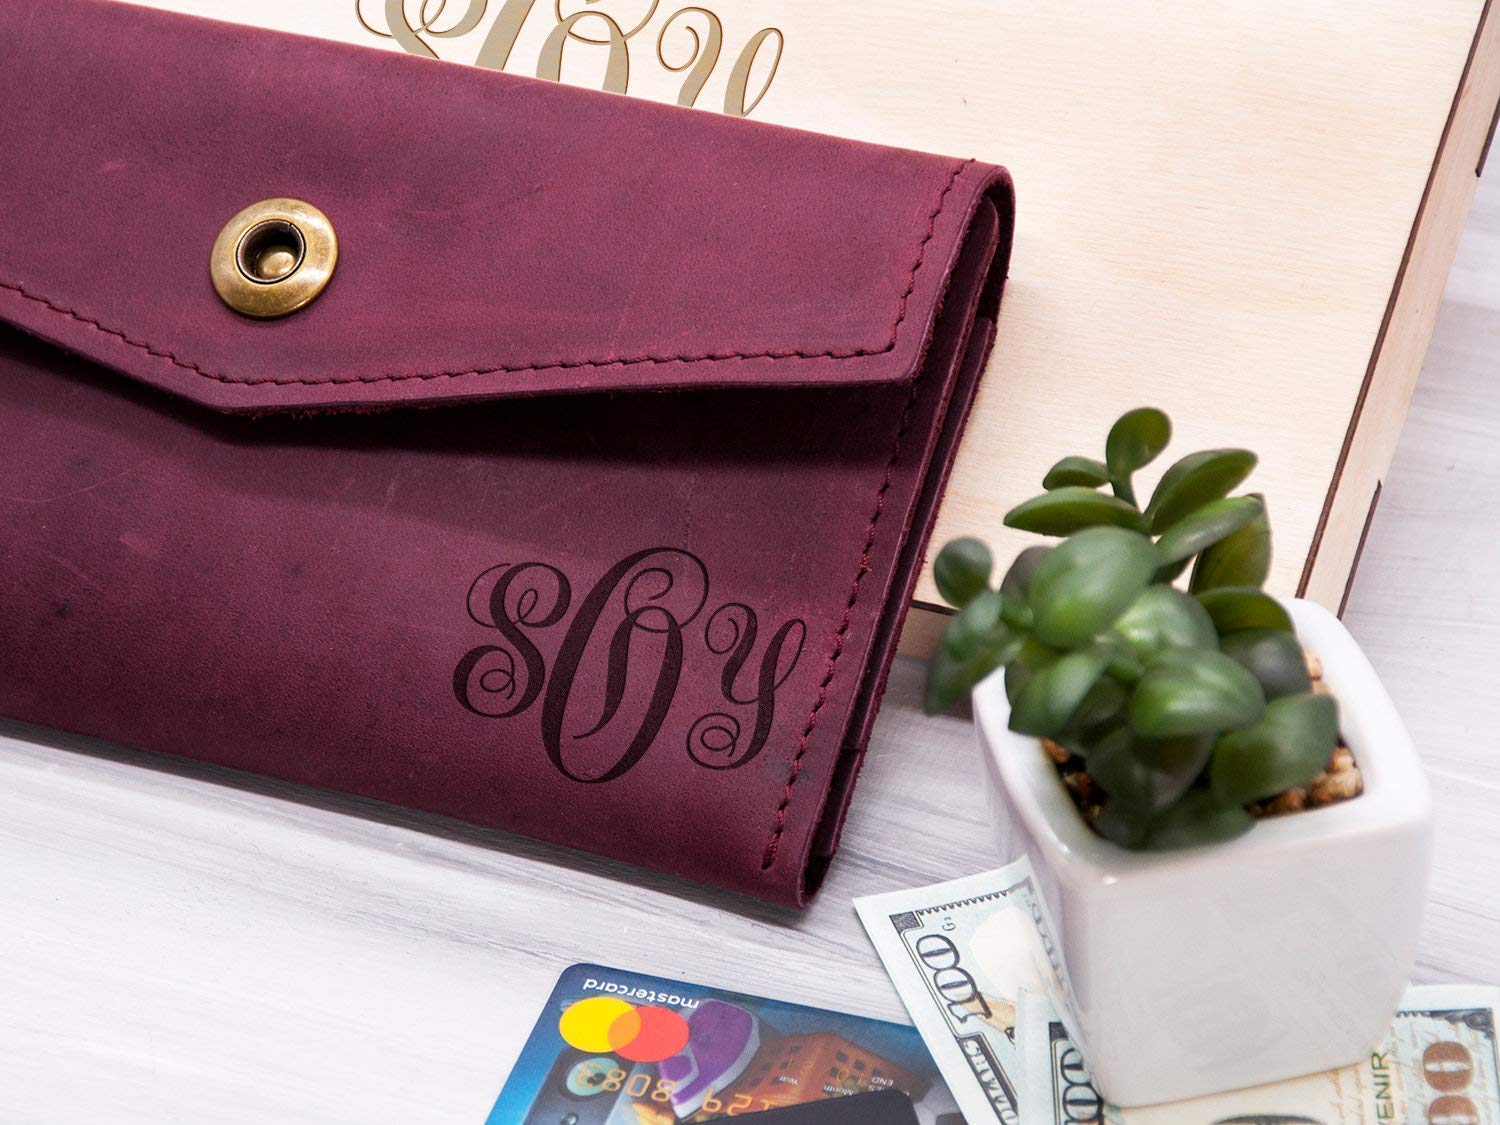 Personalized gifts for mom womens wallet,Personalized gifts for women,Anniversary gift for wife 3 years,Womens wallet handmade